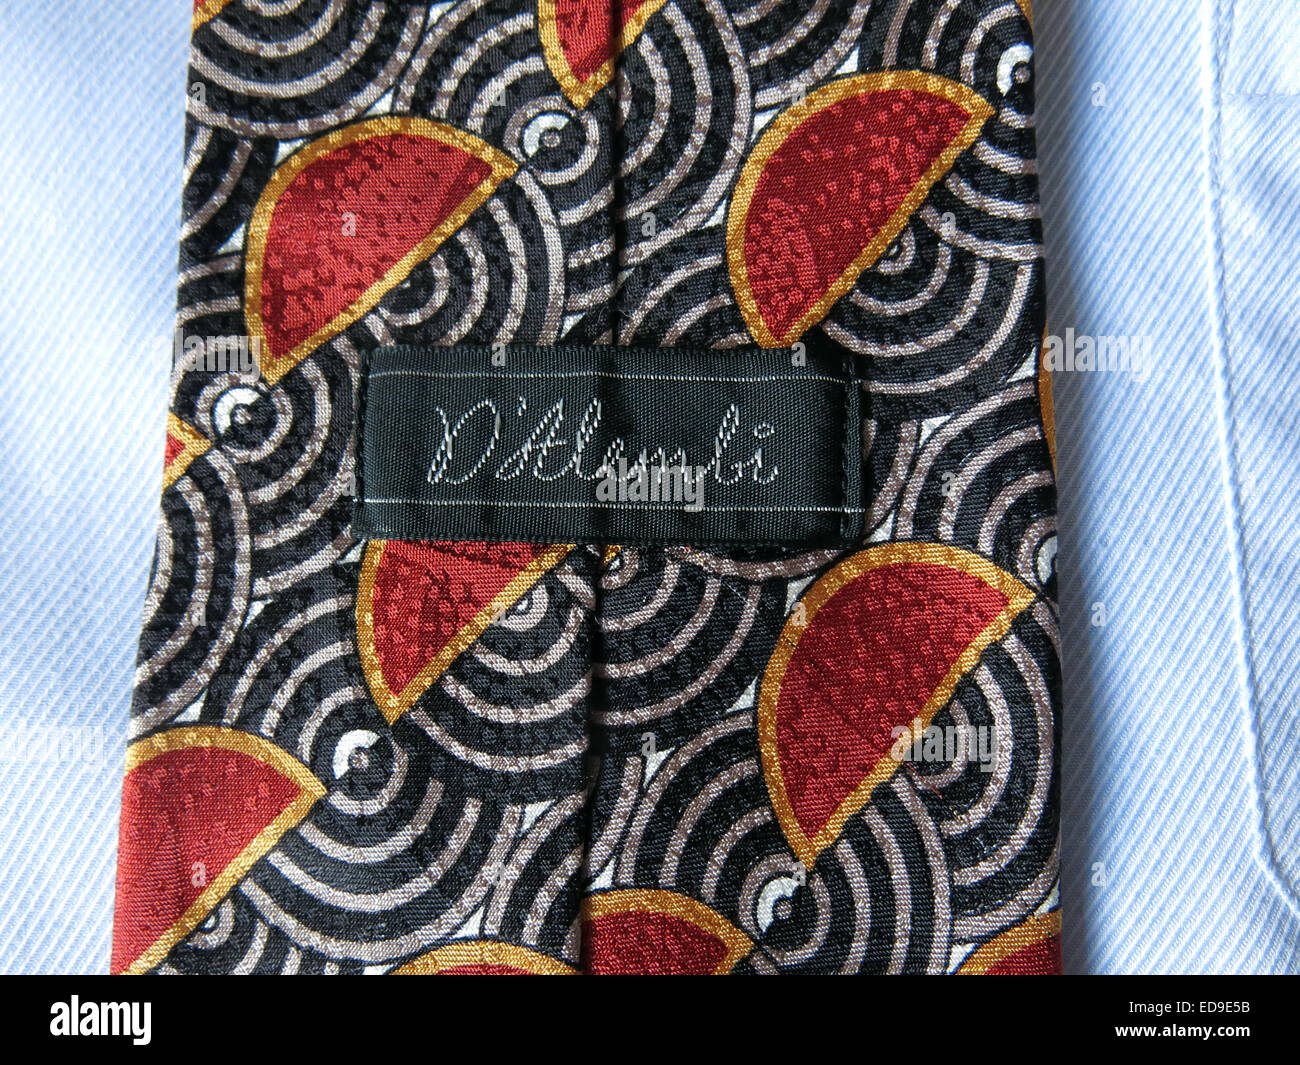 Interesting vintage Dalembi tie, male neckware in silk - Stock Image